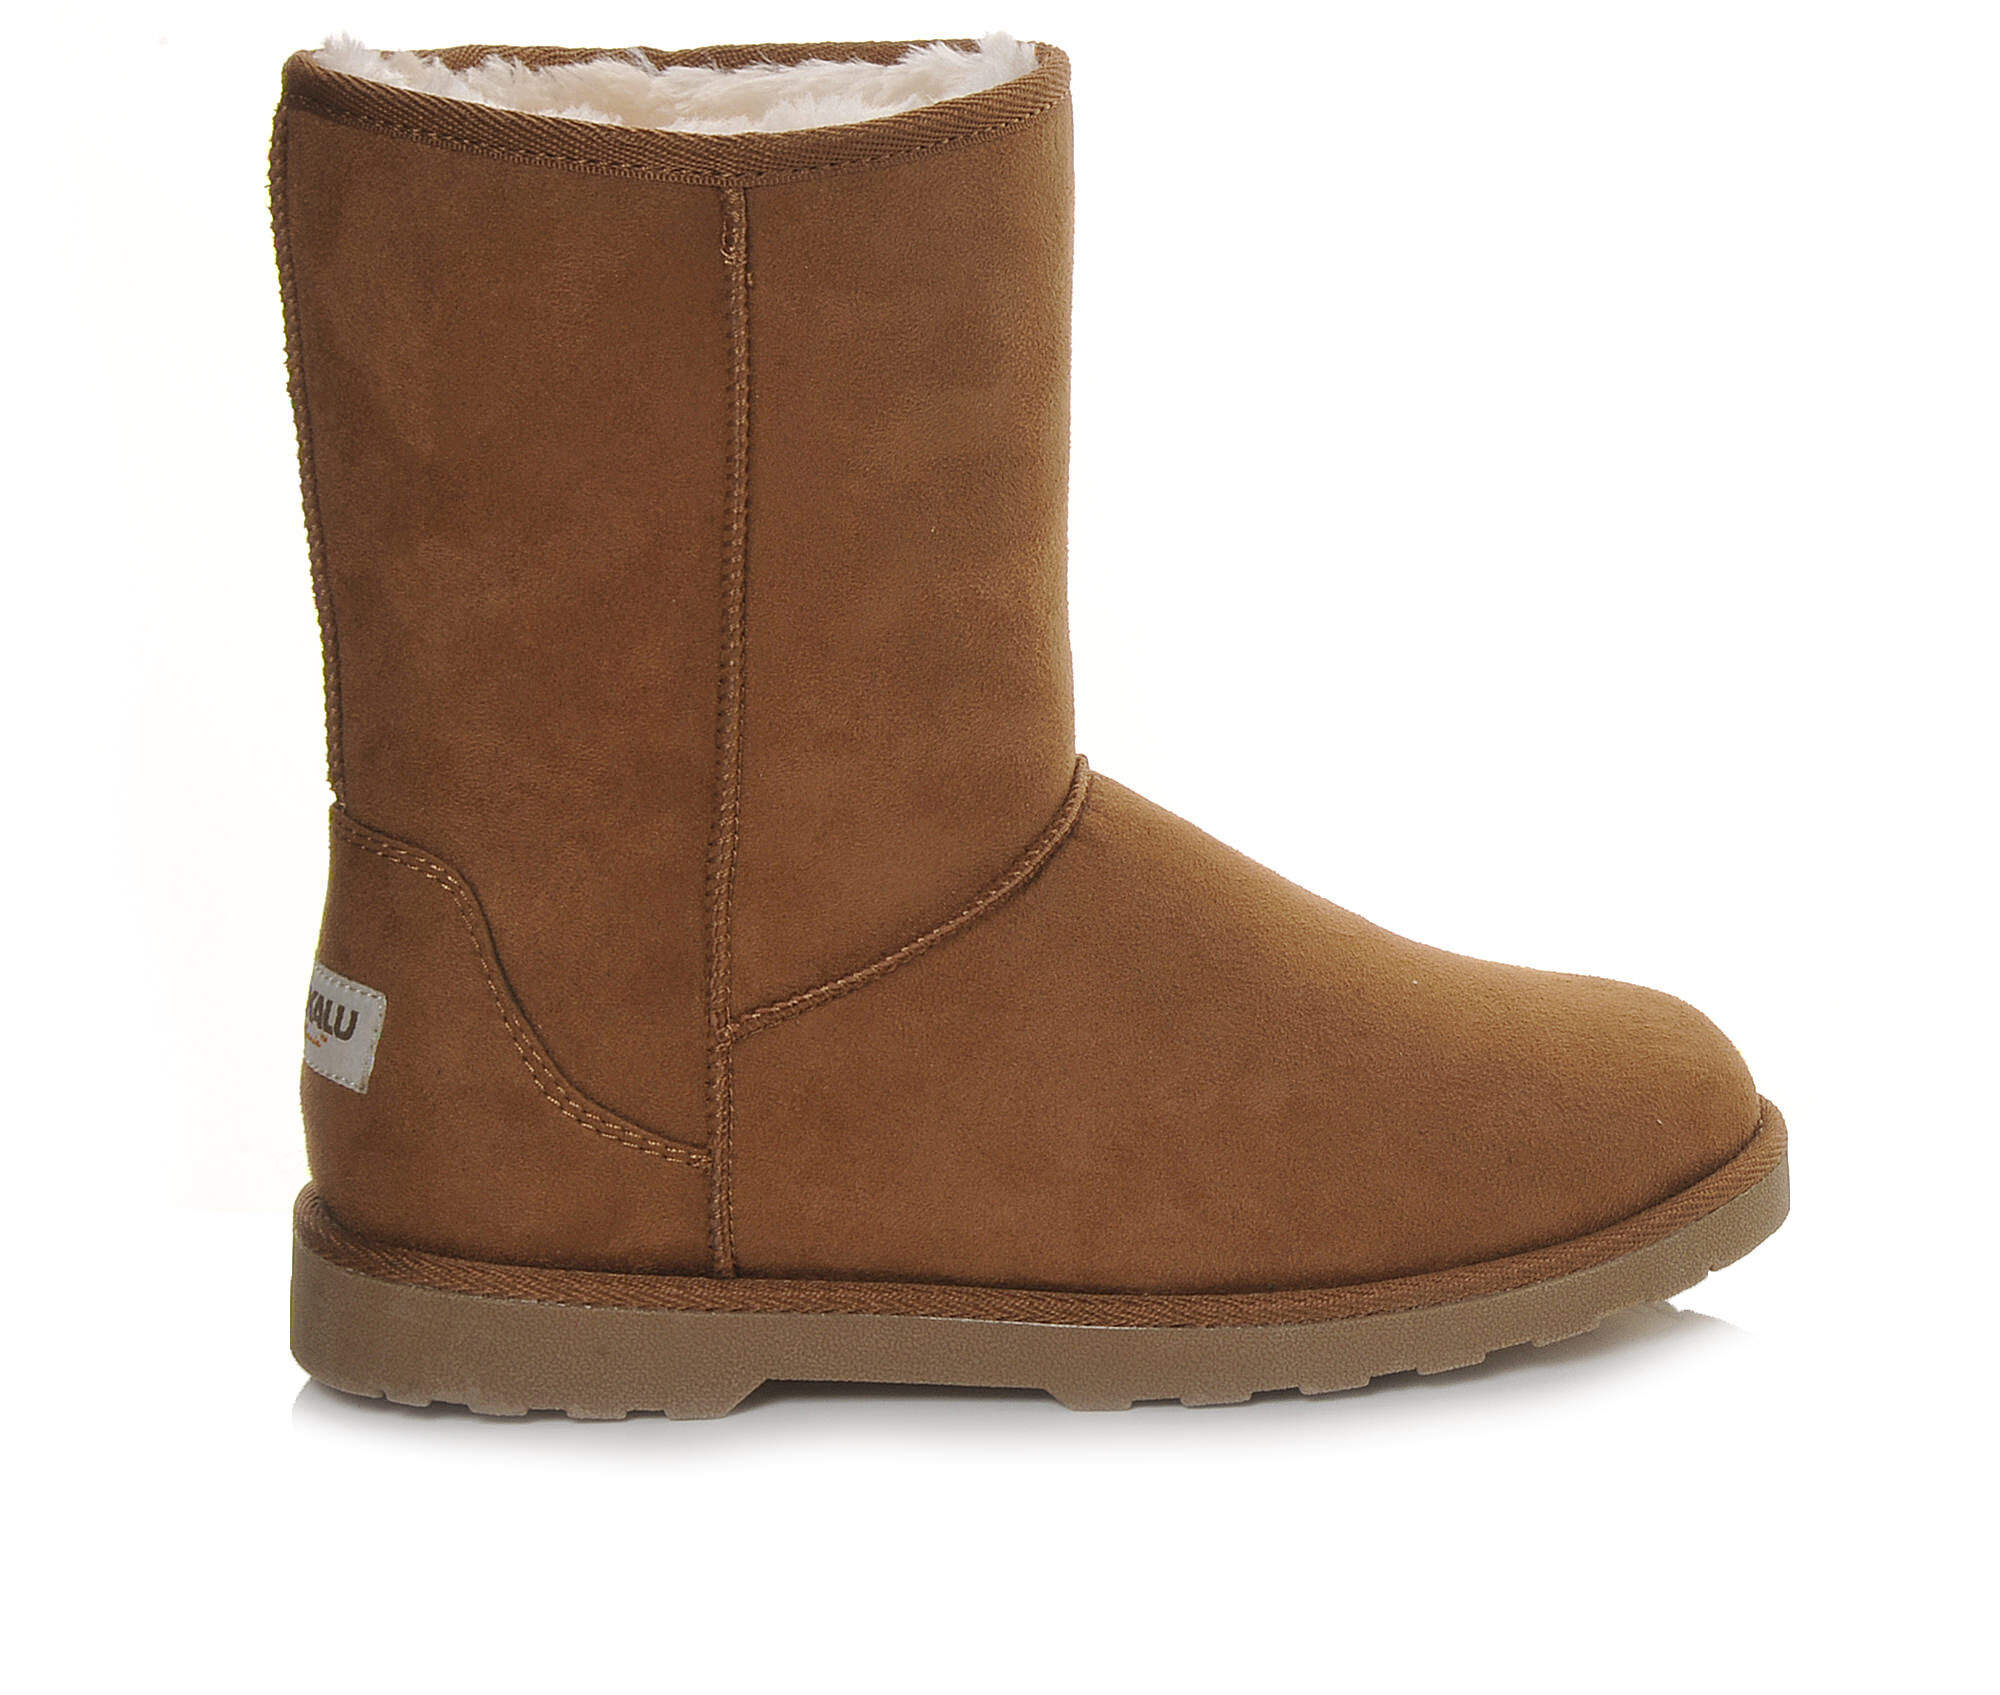 Women's Shoes | Boots and Sandals for Women